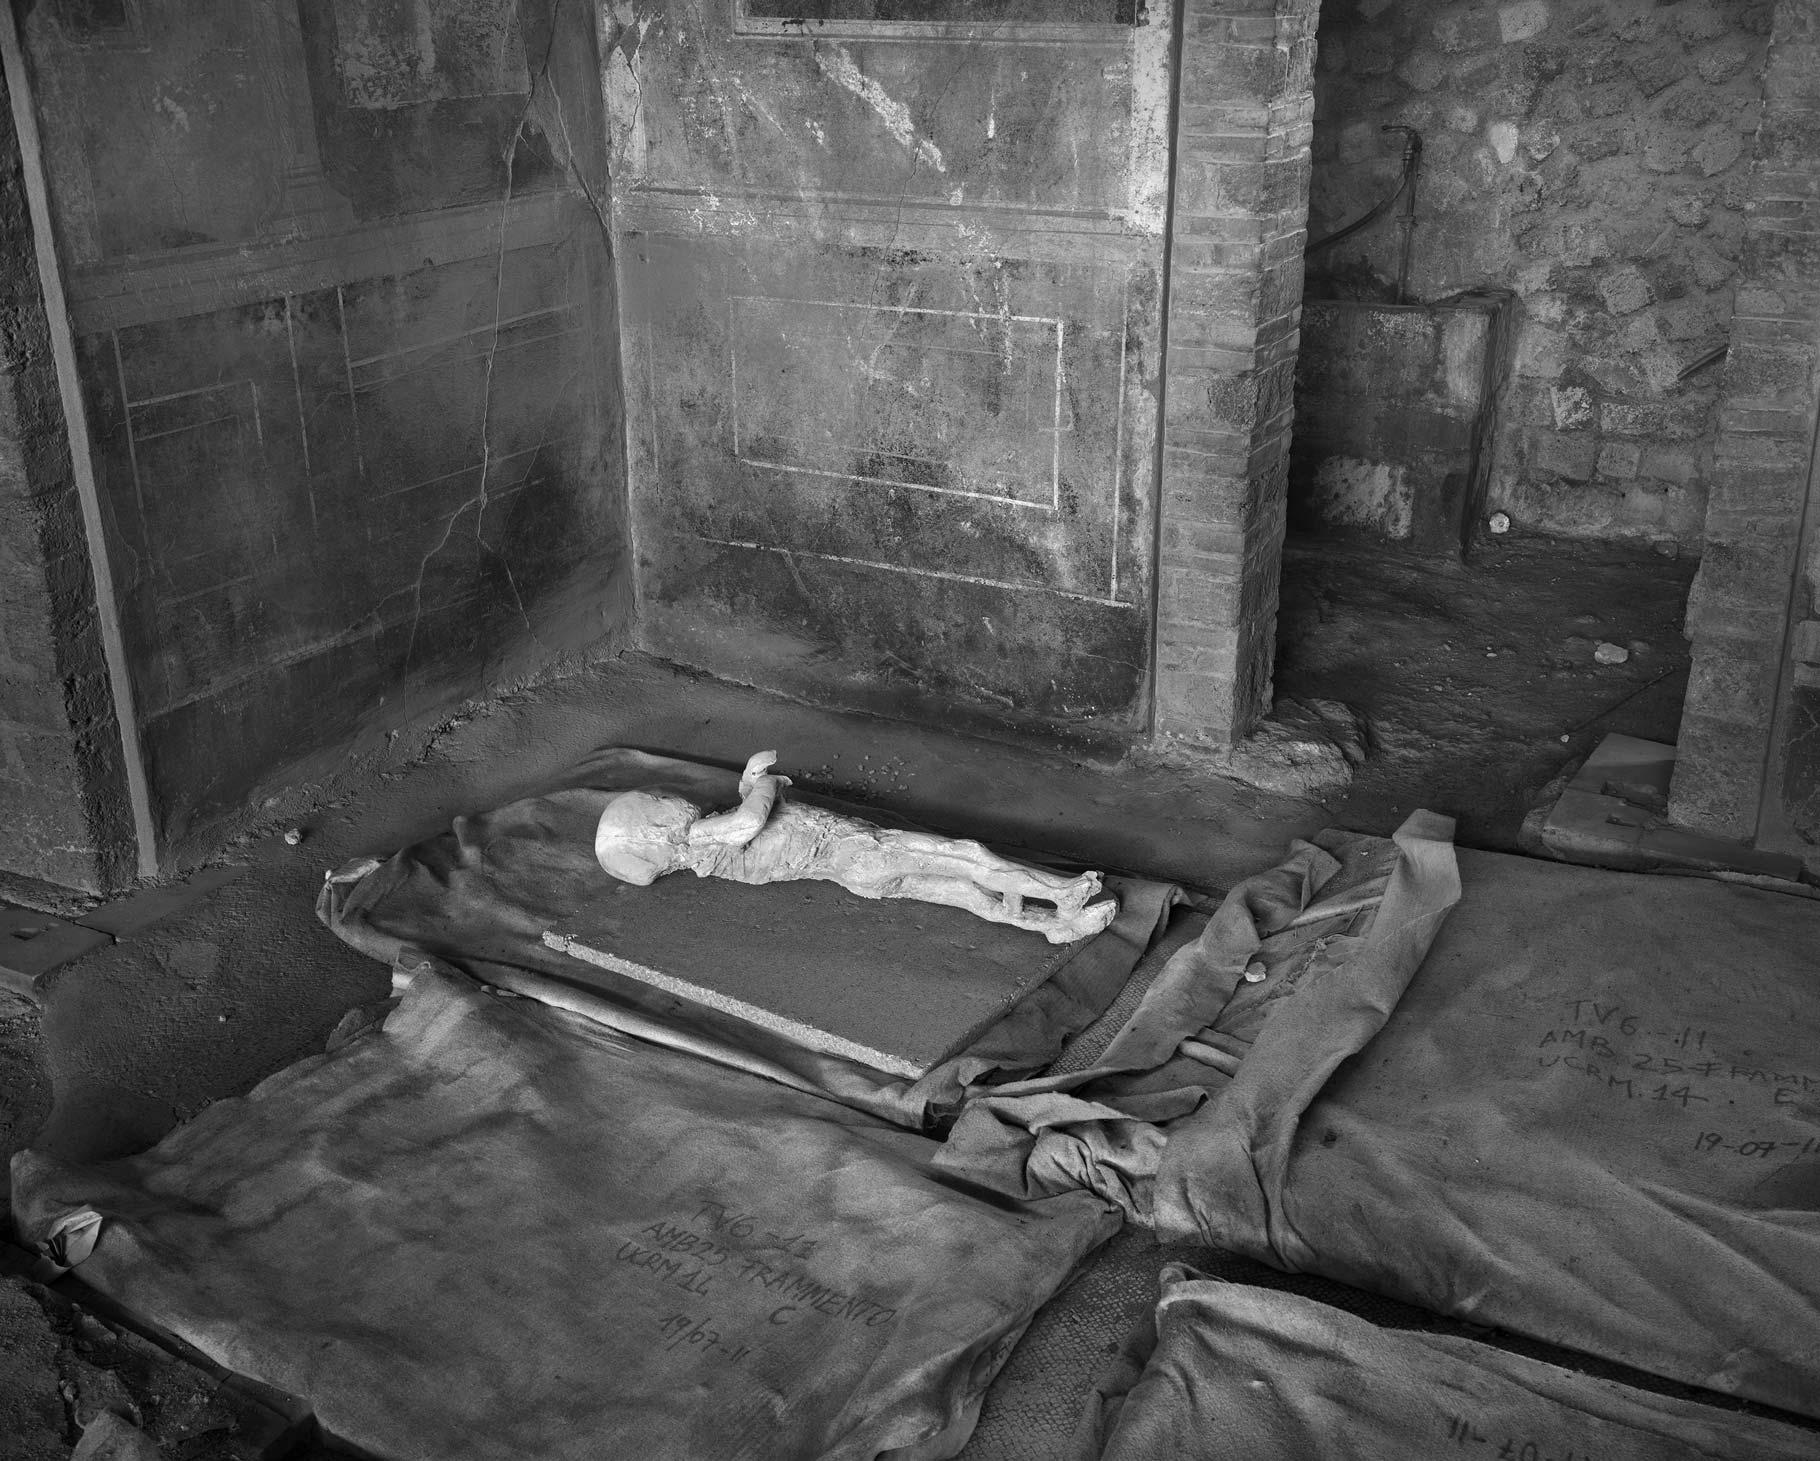 Body cast of a child, part of a family of four who died under the staircase, House of the Golden Bracelet (VI.17.42), 2017